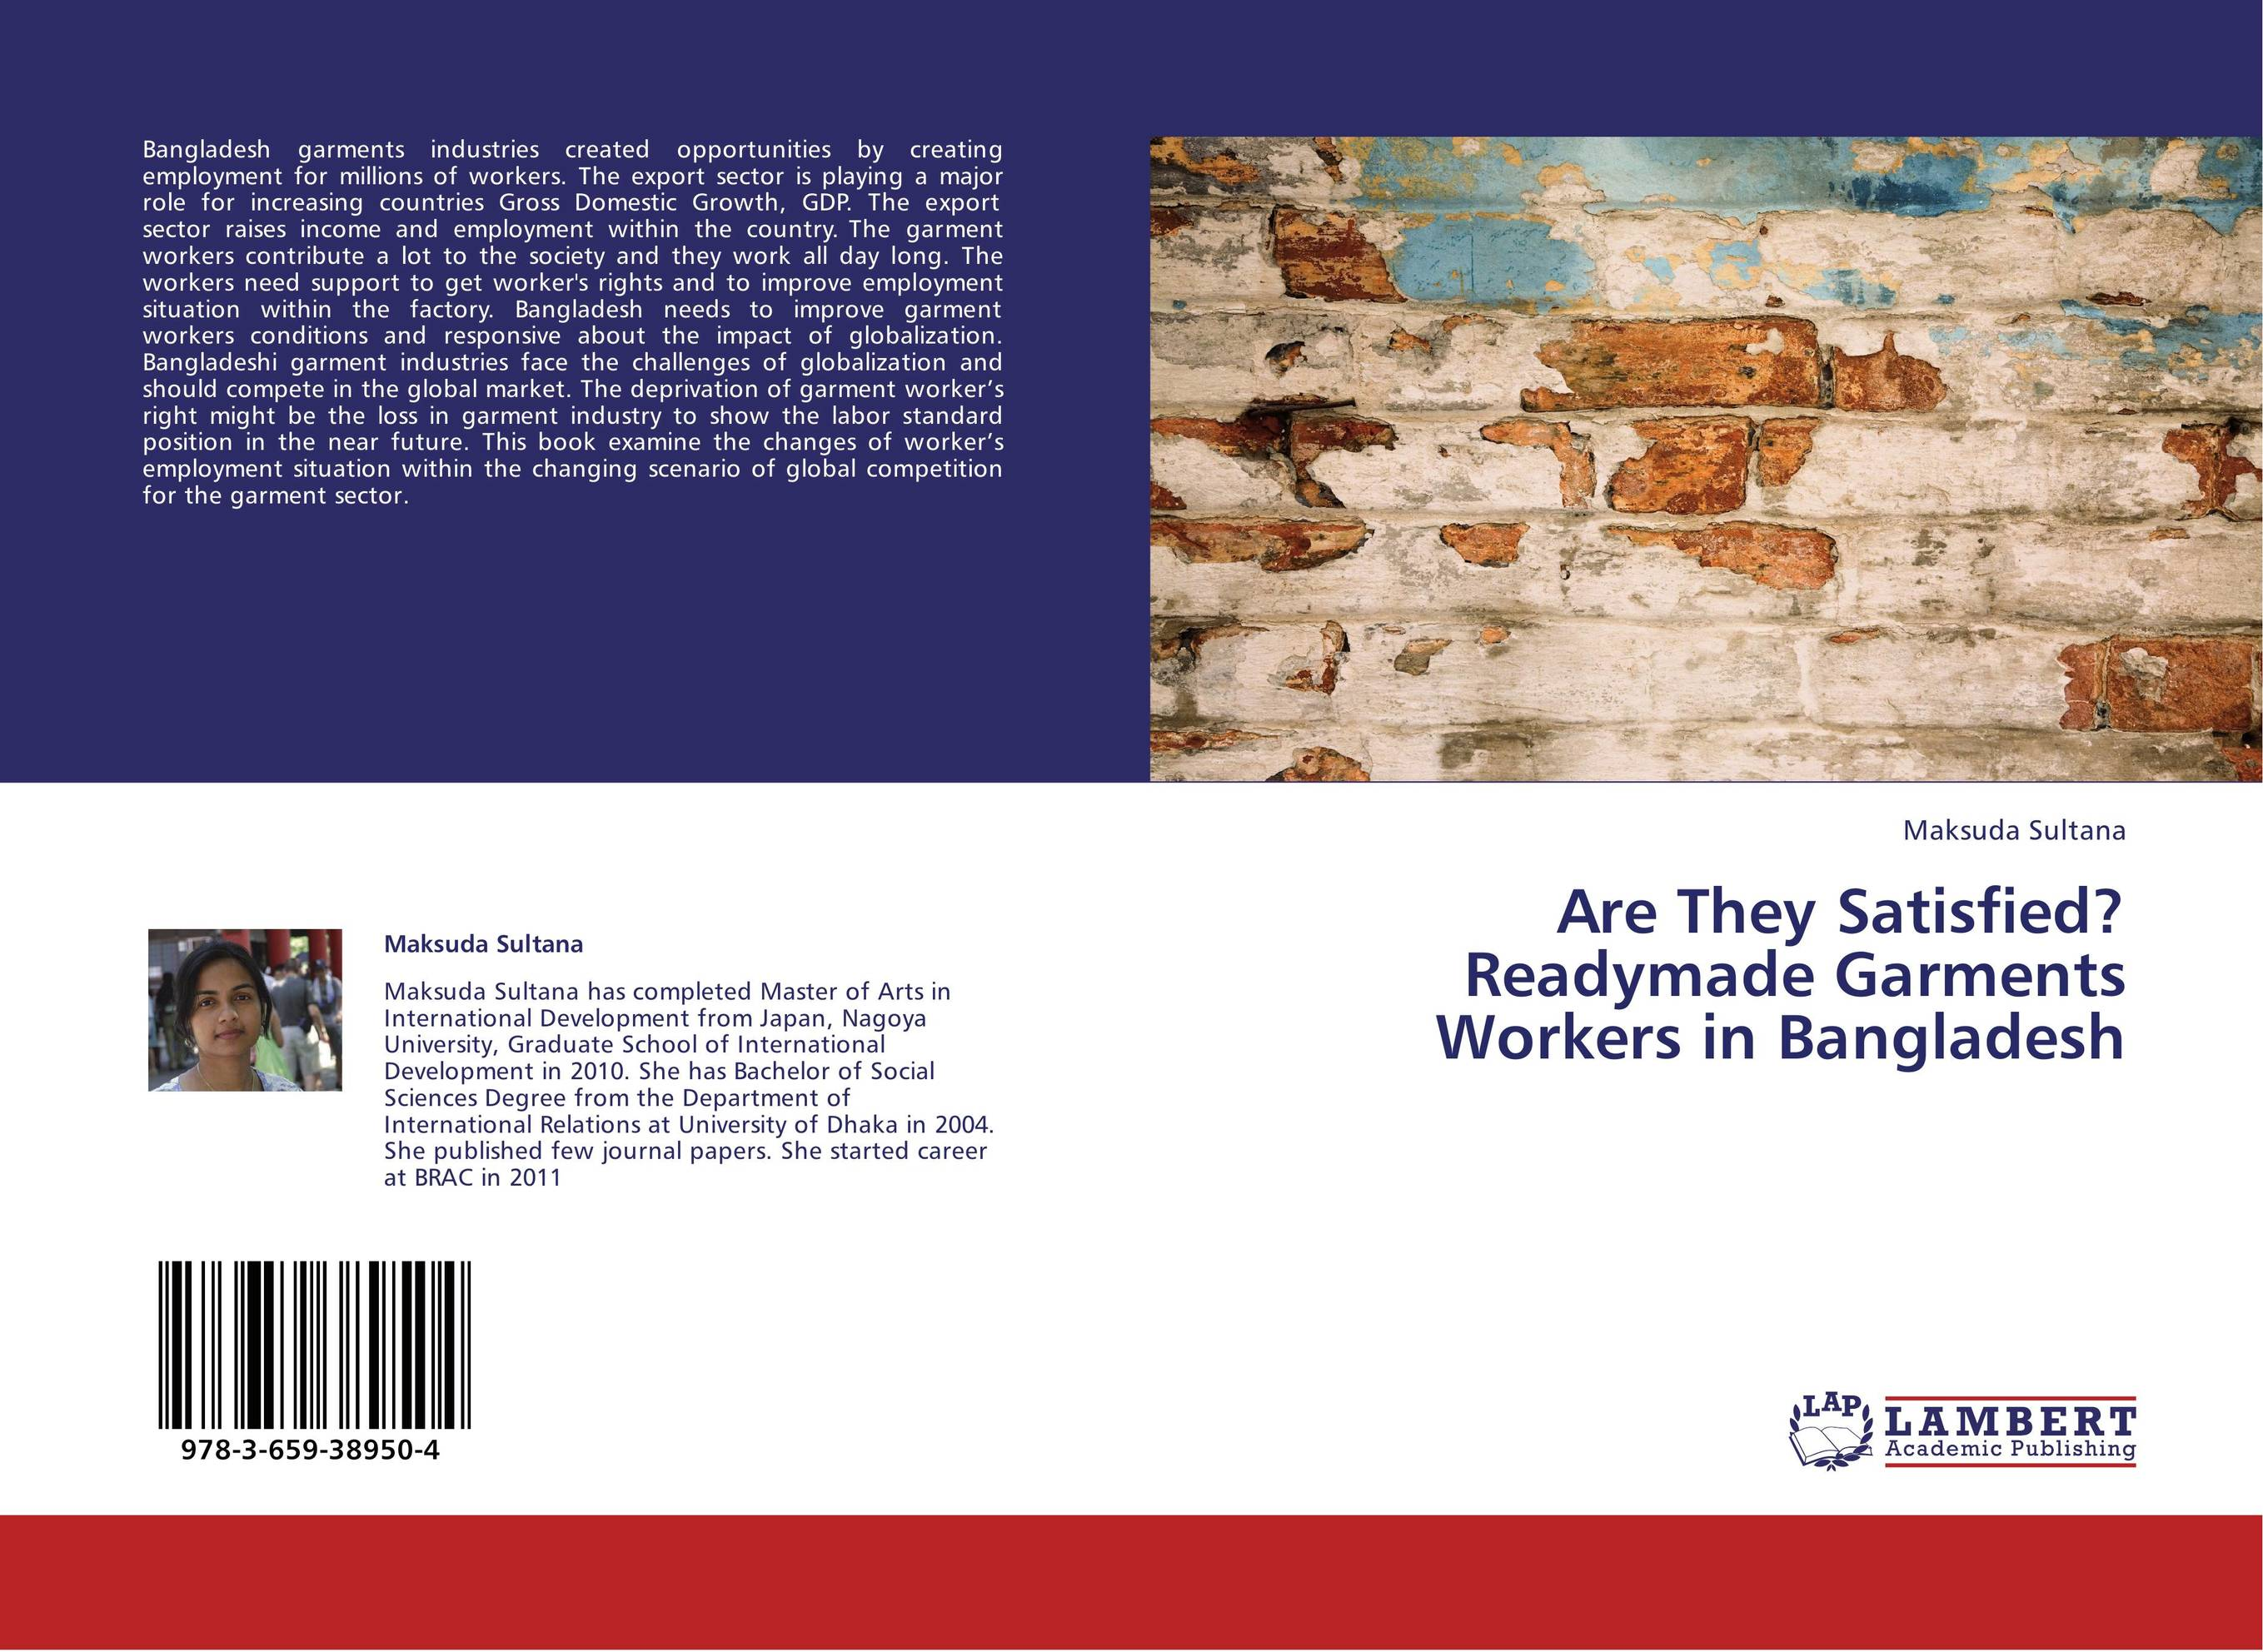 ready made garments a case study Using the ready-made garments' (rmg) industry in bangladesh as a case study, challenges and key issues relating to csr are highlighted design/methodology/approach - the paper draws from the review of existing literature, and the content analysis of two leading newspapers in bangladesh for a period of one year (july 2012-june 2013) to.